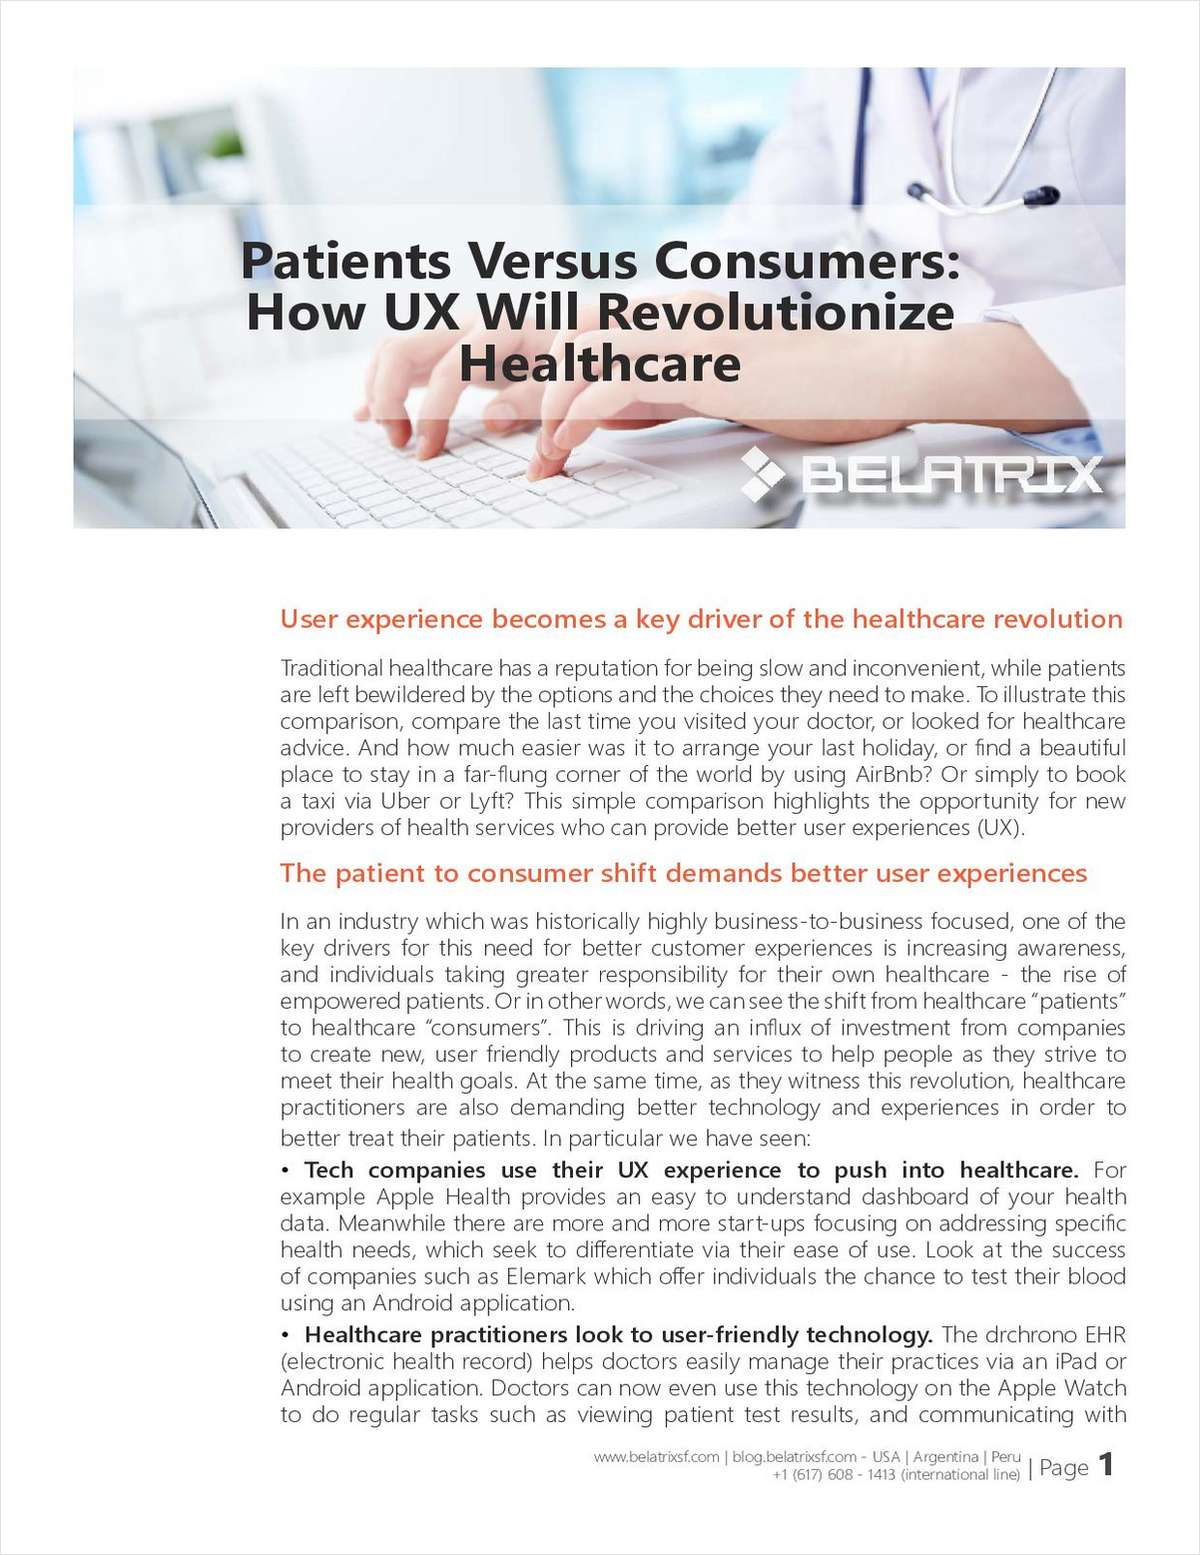 Patients Versus Consumers: How UX Will Revolutionize Healthcare